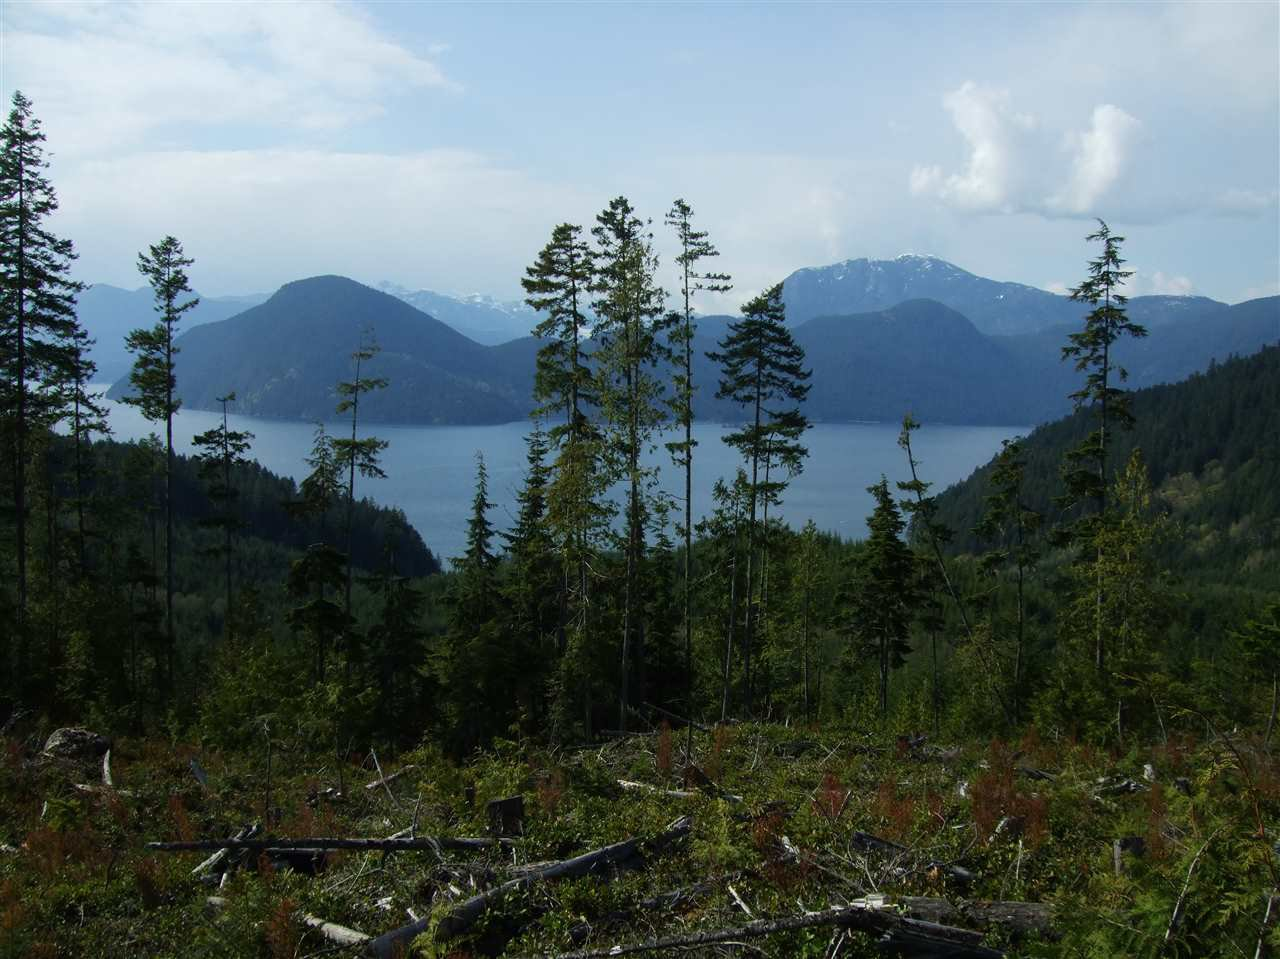 Photo 8: Photos: DL 5658 KILLAM BAY in Egmont: Pender Harbour Egmont Land for sale (Sunshine Coast)  : MLS®# R2402613